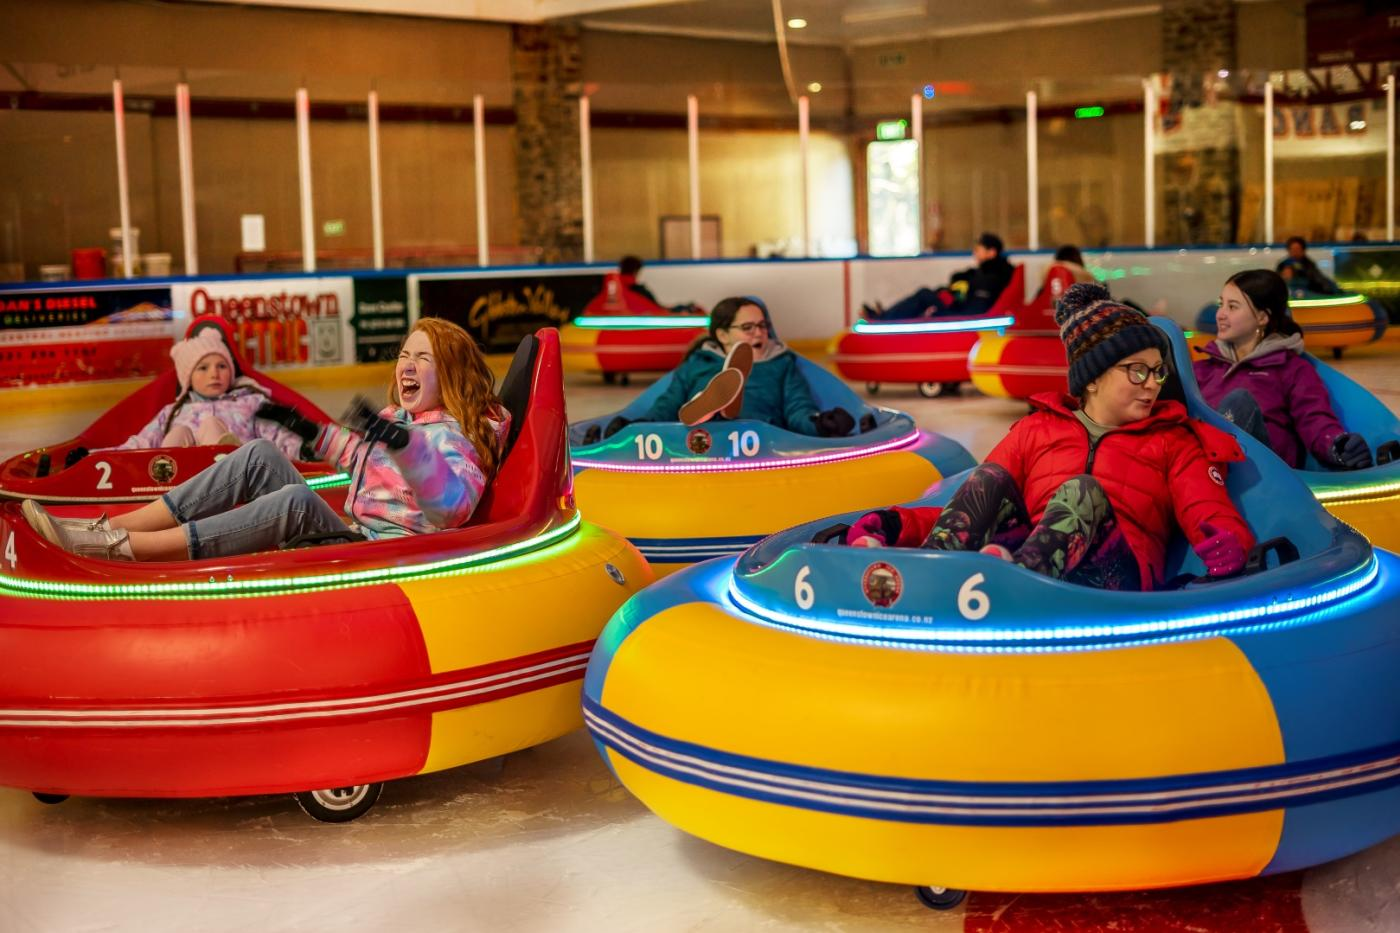 Kids having fun at the Queenstown Ice Arena Bumper Cars